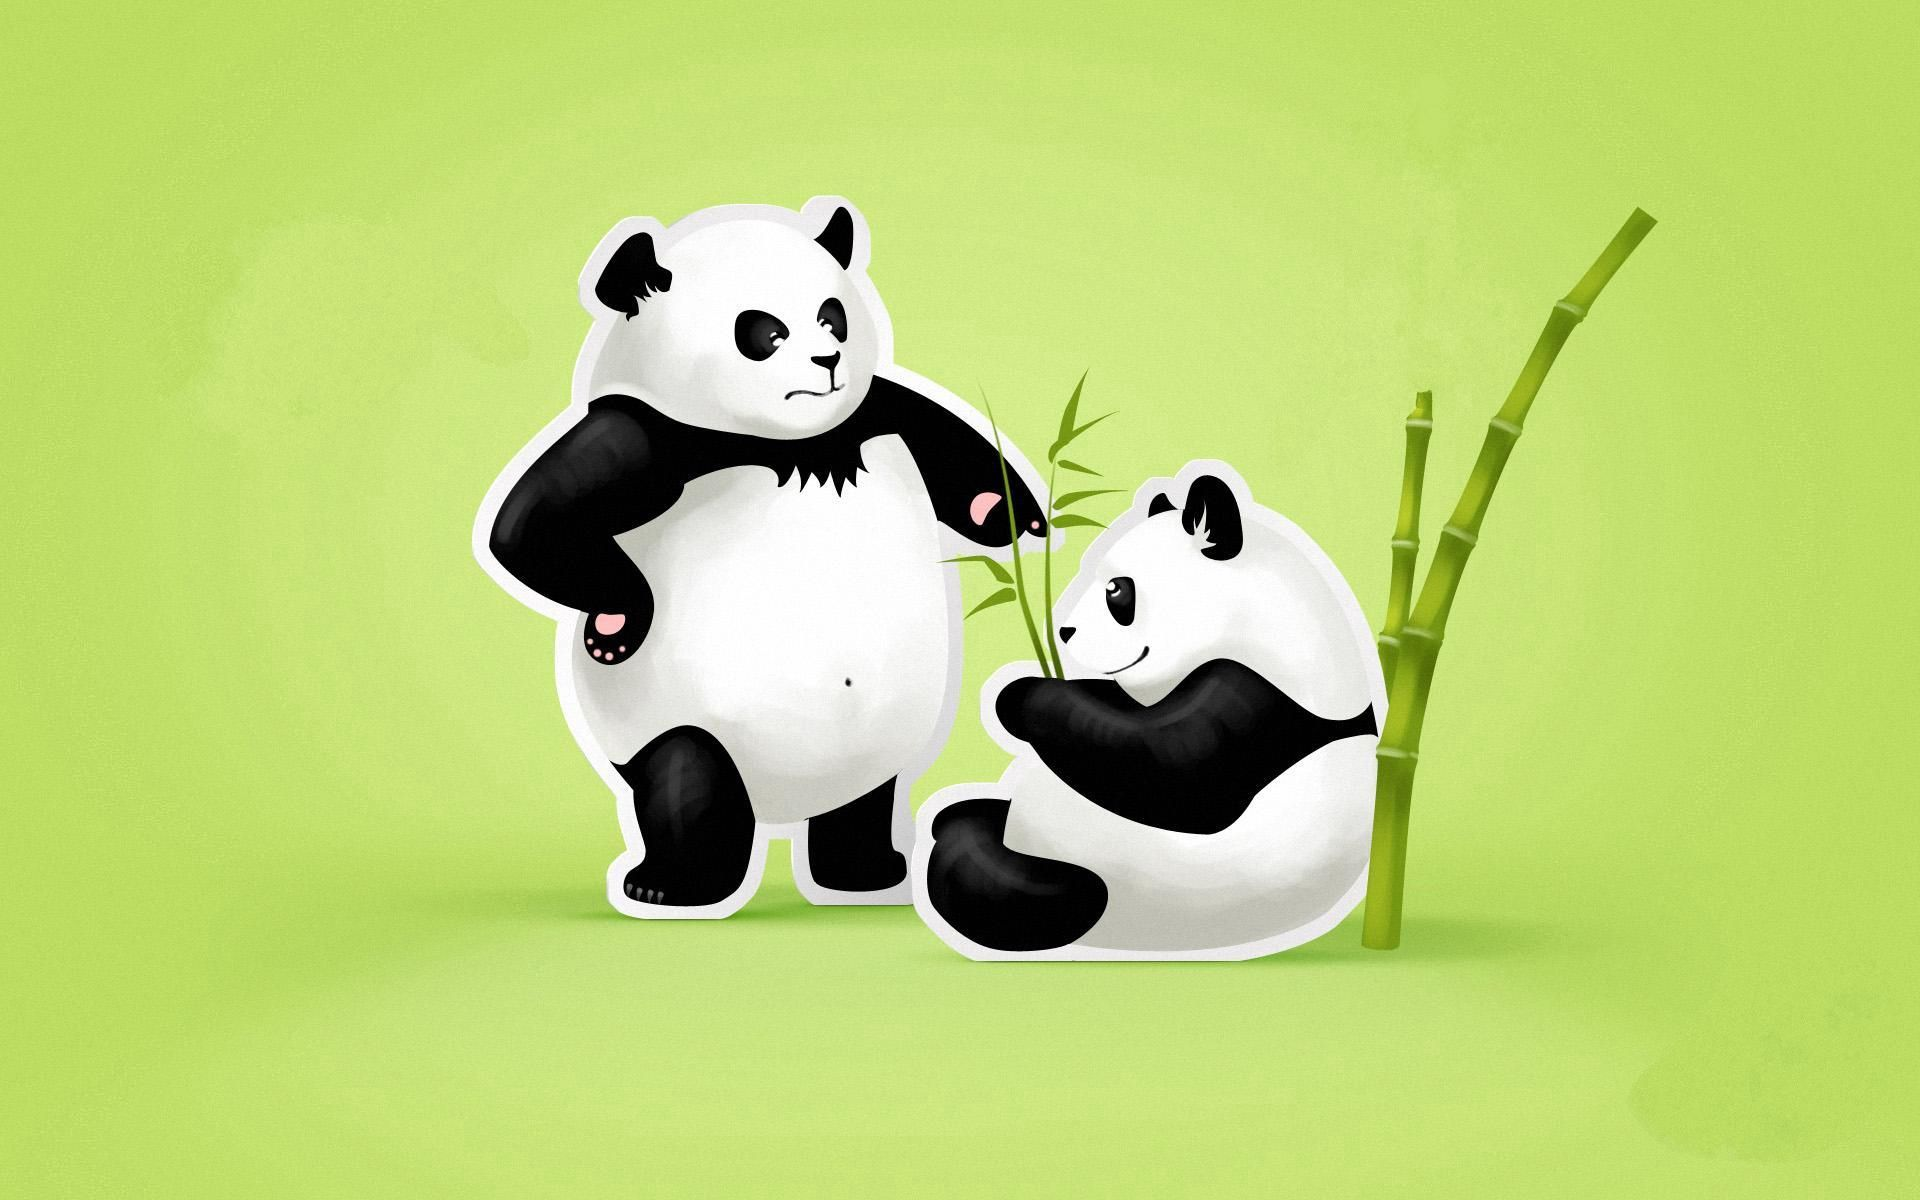 76525 download wallpaper Vector, Couple, Pair, Threat, Quarrel, Pandas screensavers and pictures for free